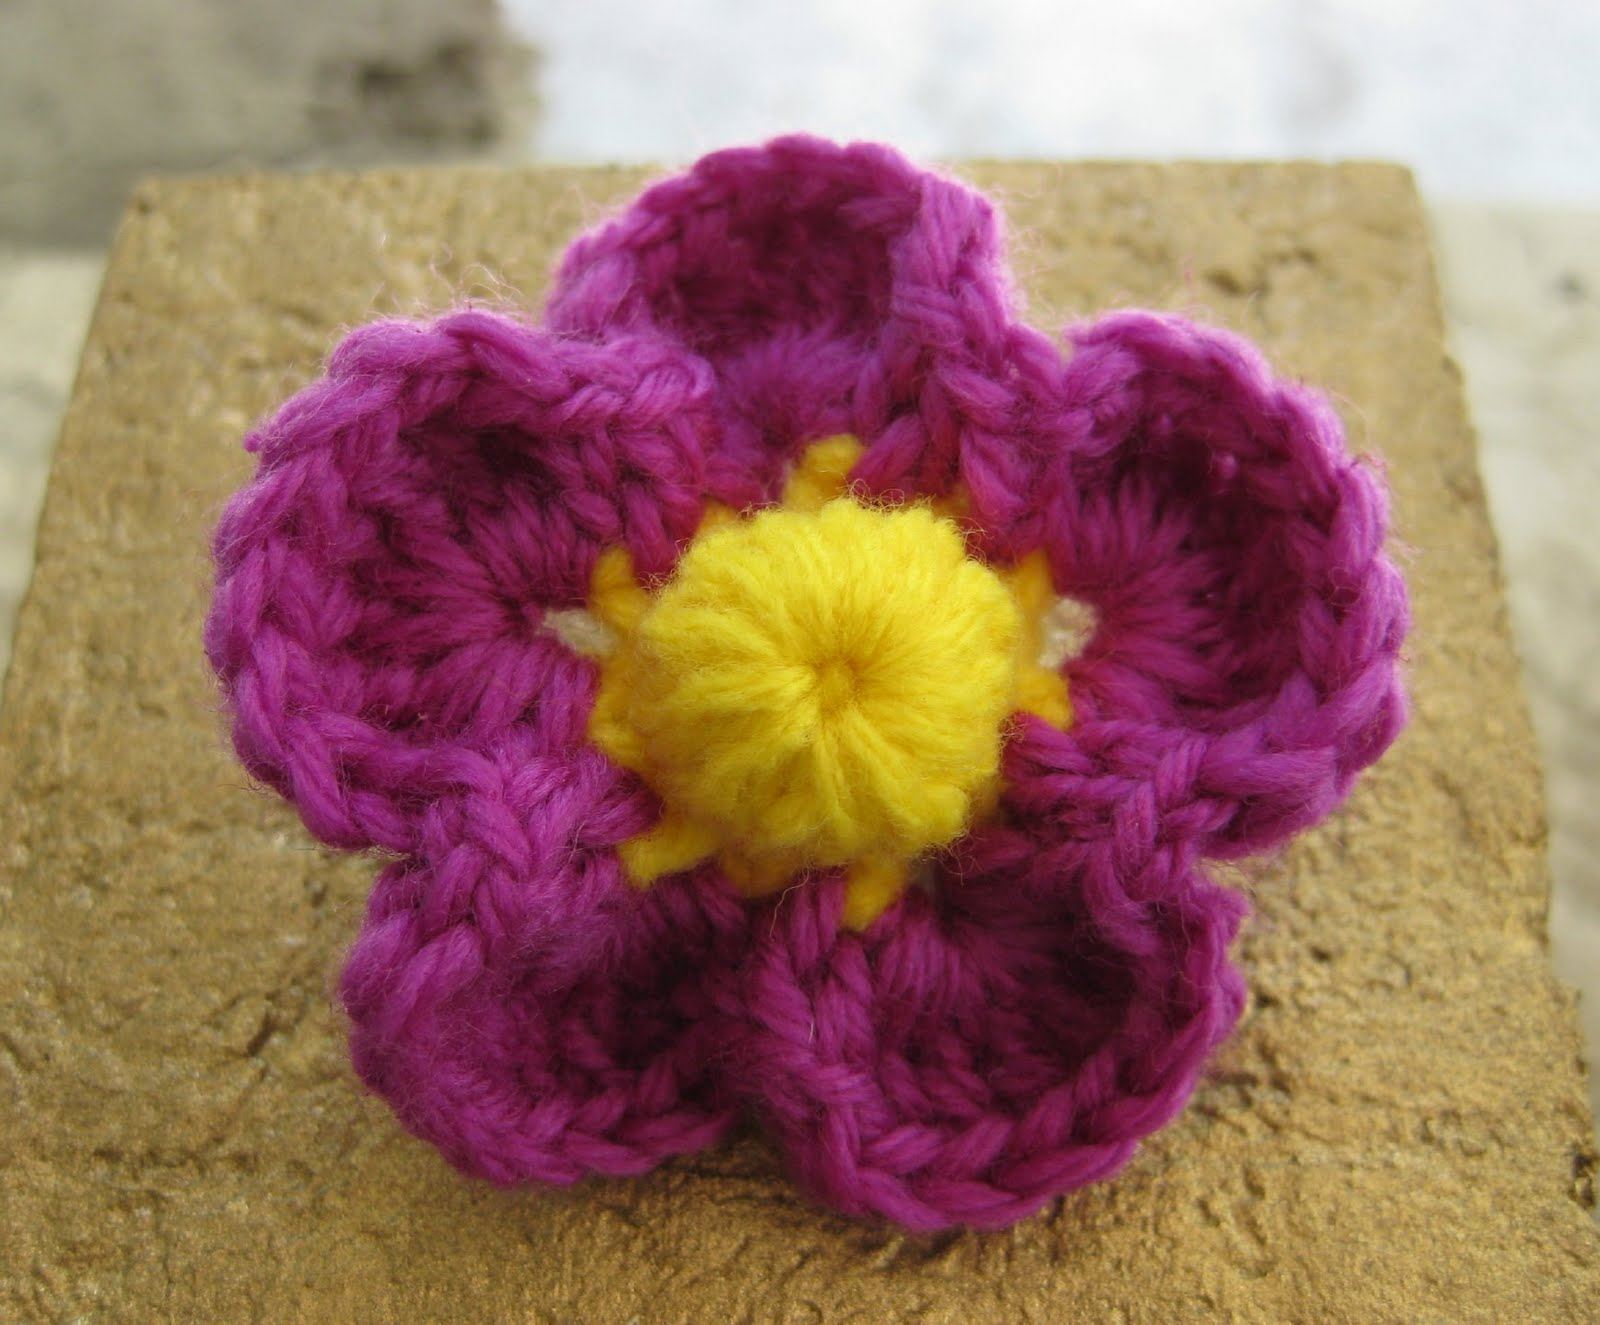 Crochet and Other Stuff: Crochet a flower!